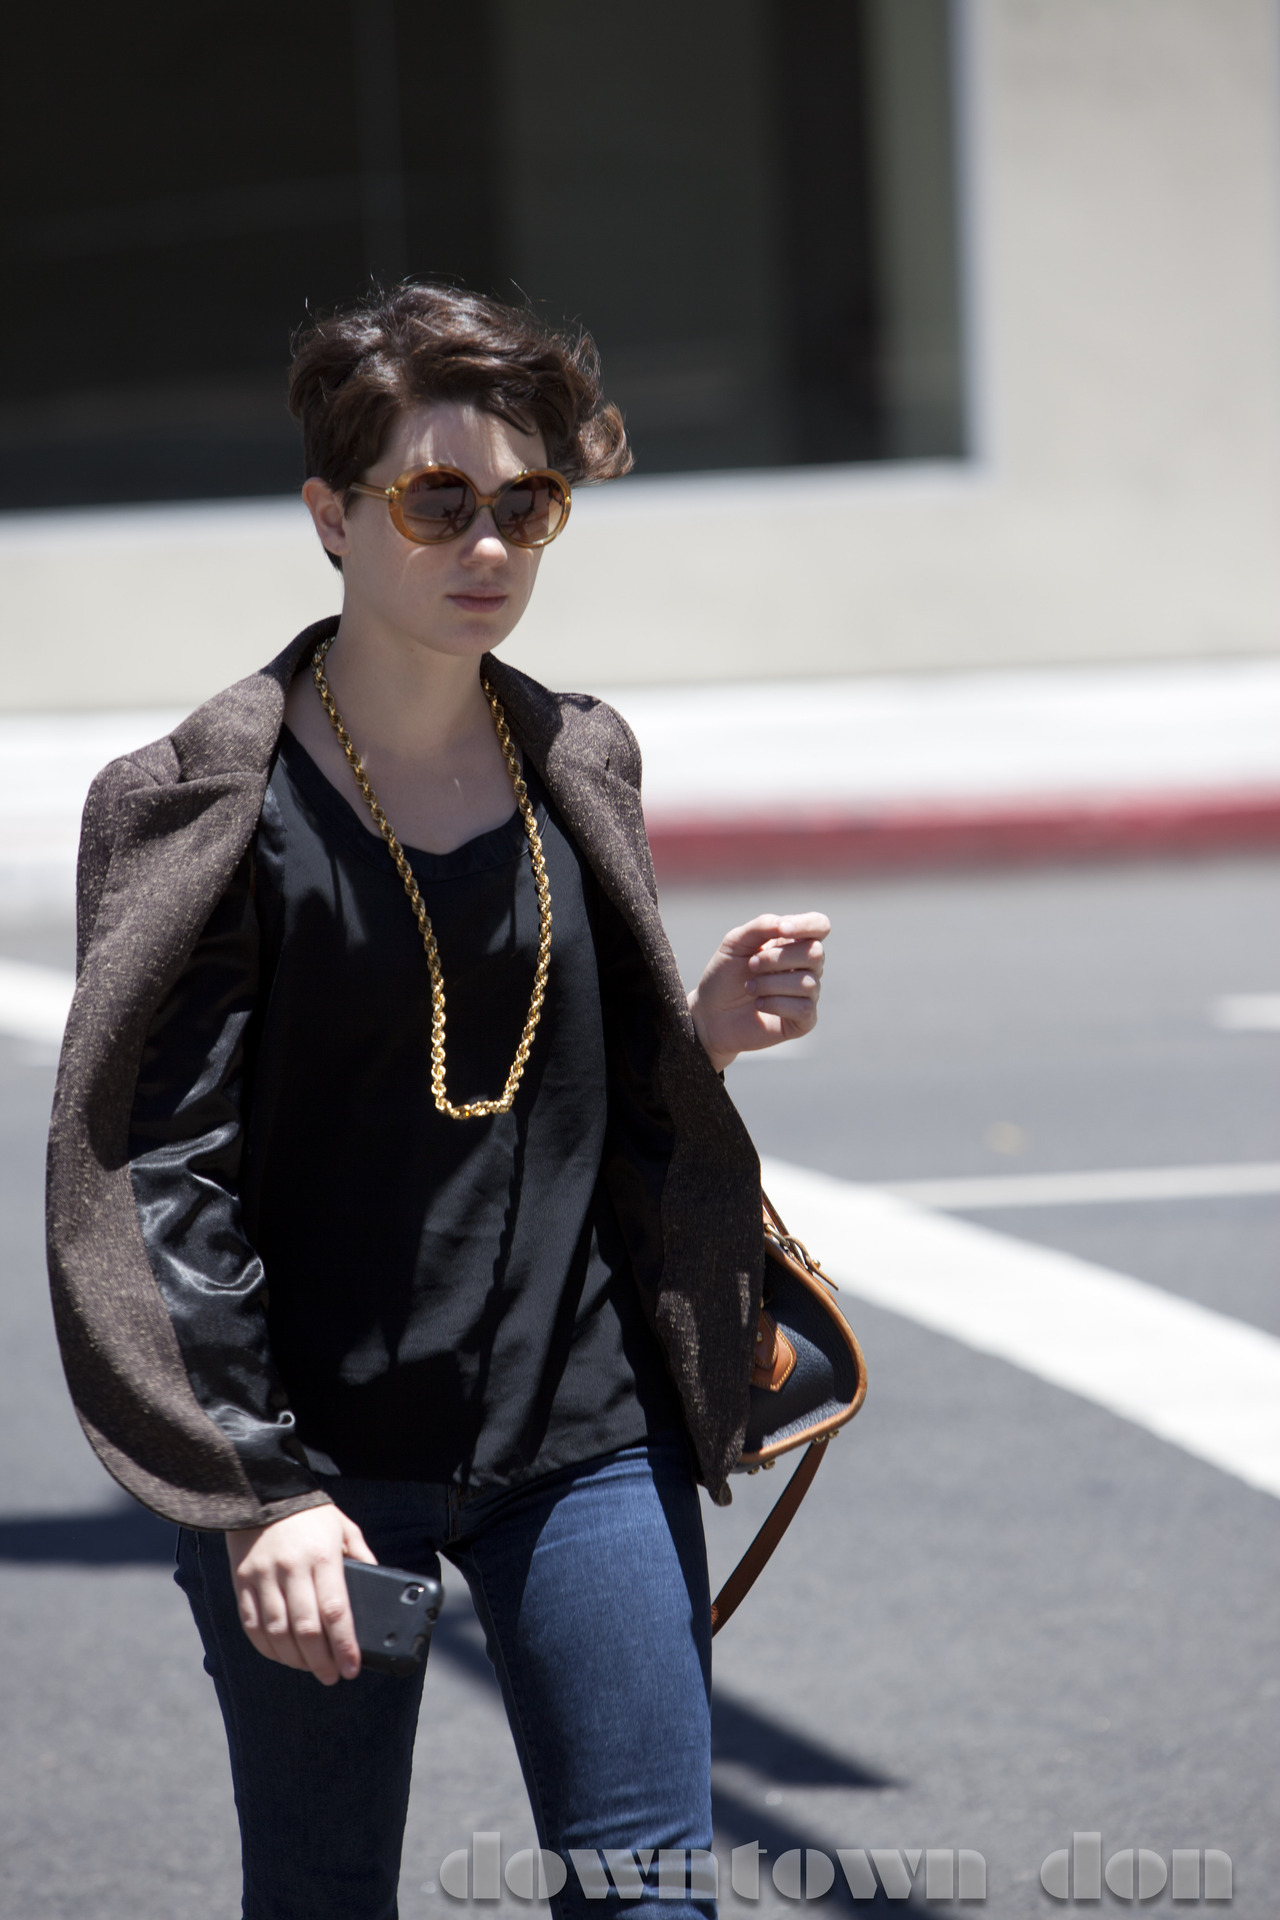 hair, skin, frames. Done. #fashion #dtla #streetstyle